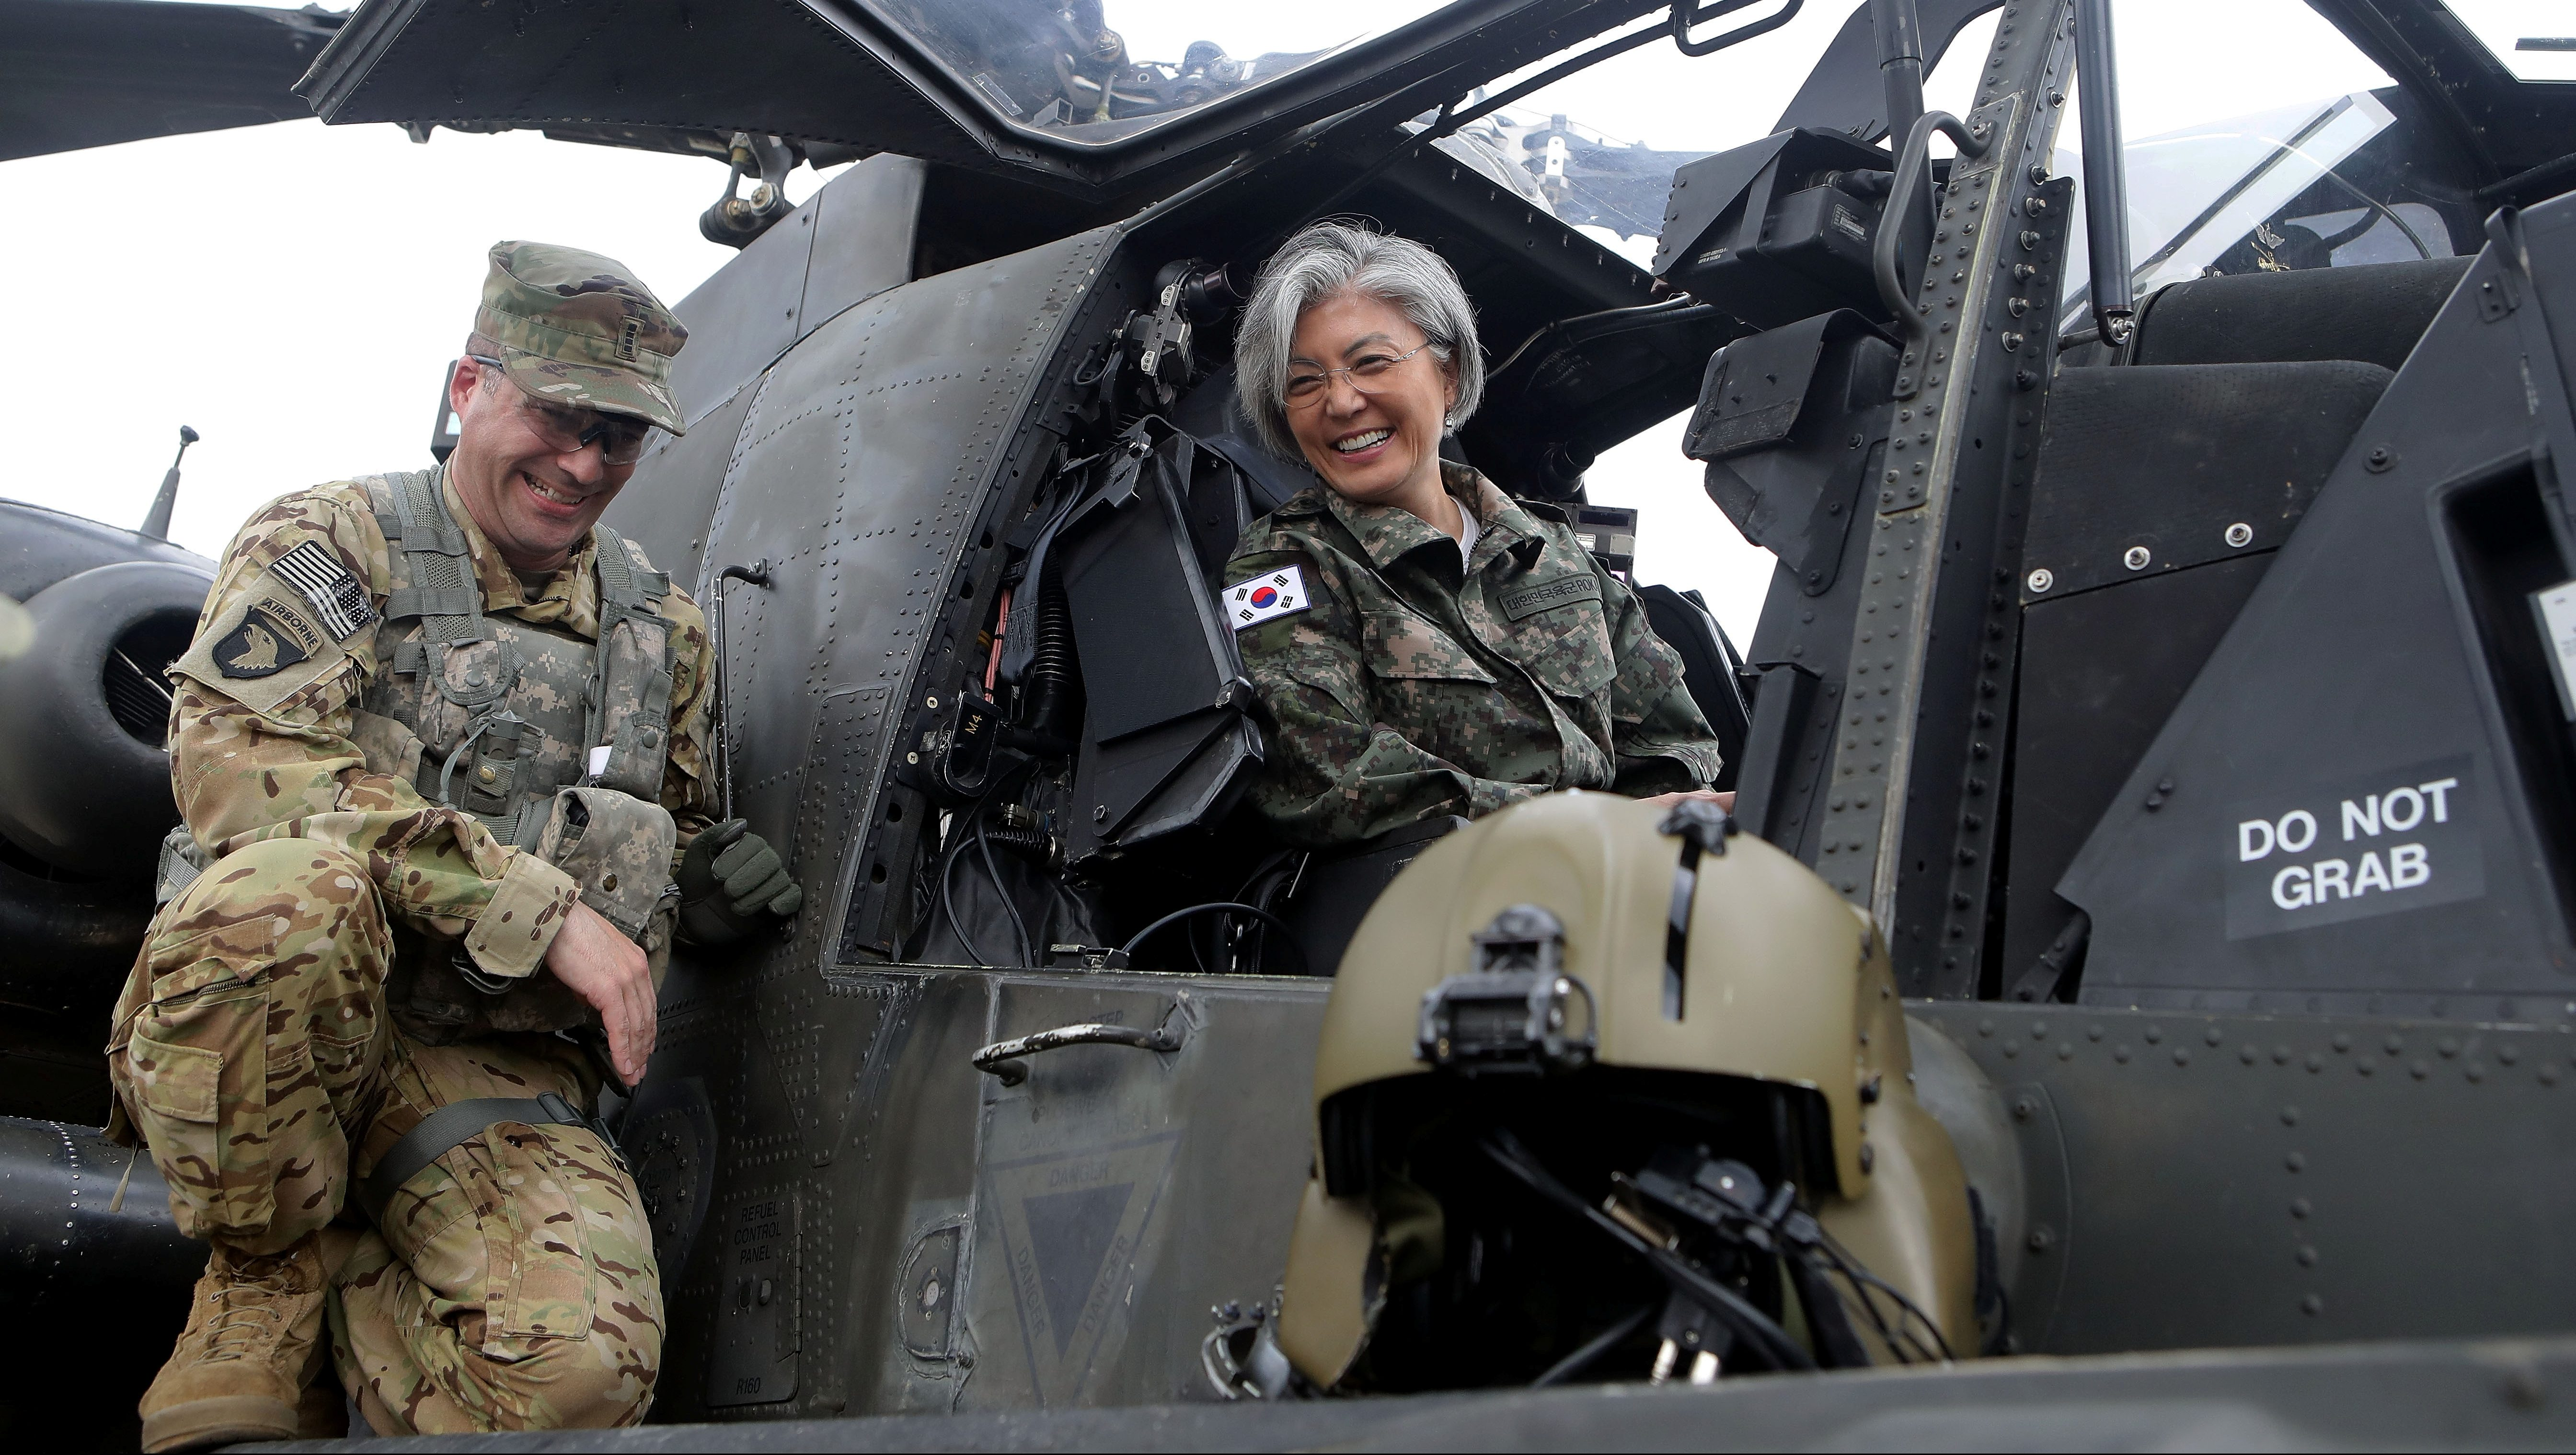 South Korean Foreign Minister Kang Kyung-wha sits in a AH-64D Apache Longbow helicopter as as she visits the headquarters of the South Korea-US Combined 2nd Infantry Division at the Camp Red Cloud in Uijeongbu, South Korea June 25, 2017. REUTERS/Chung Sung-Jun/Pool  *** Local Caption *** Kang Kyung-wha - RC1DBB6A0D90